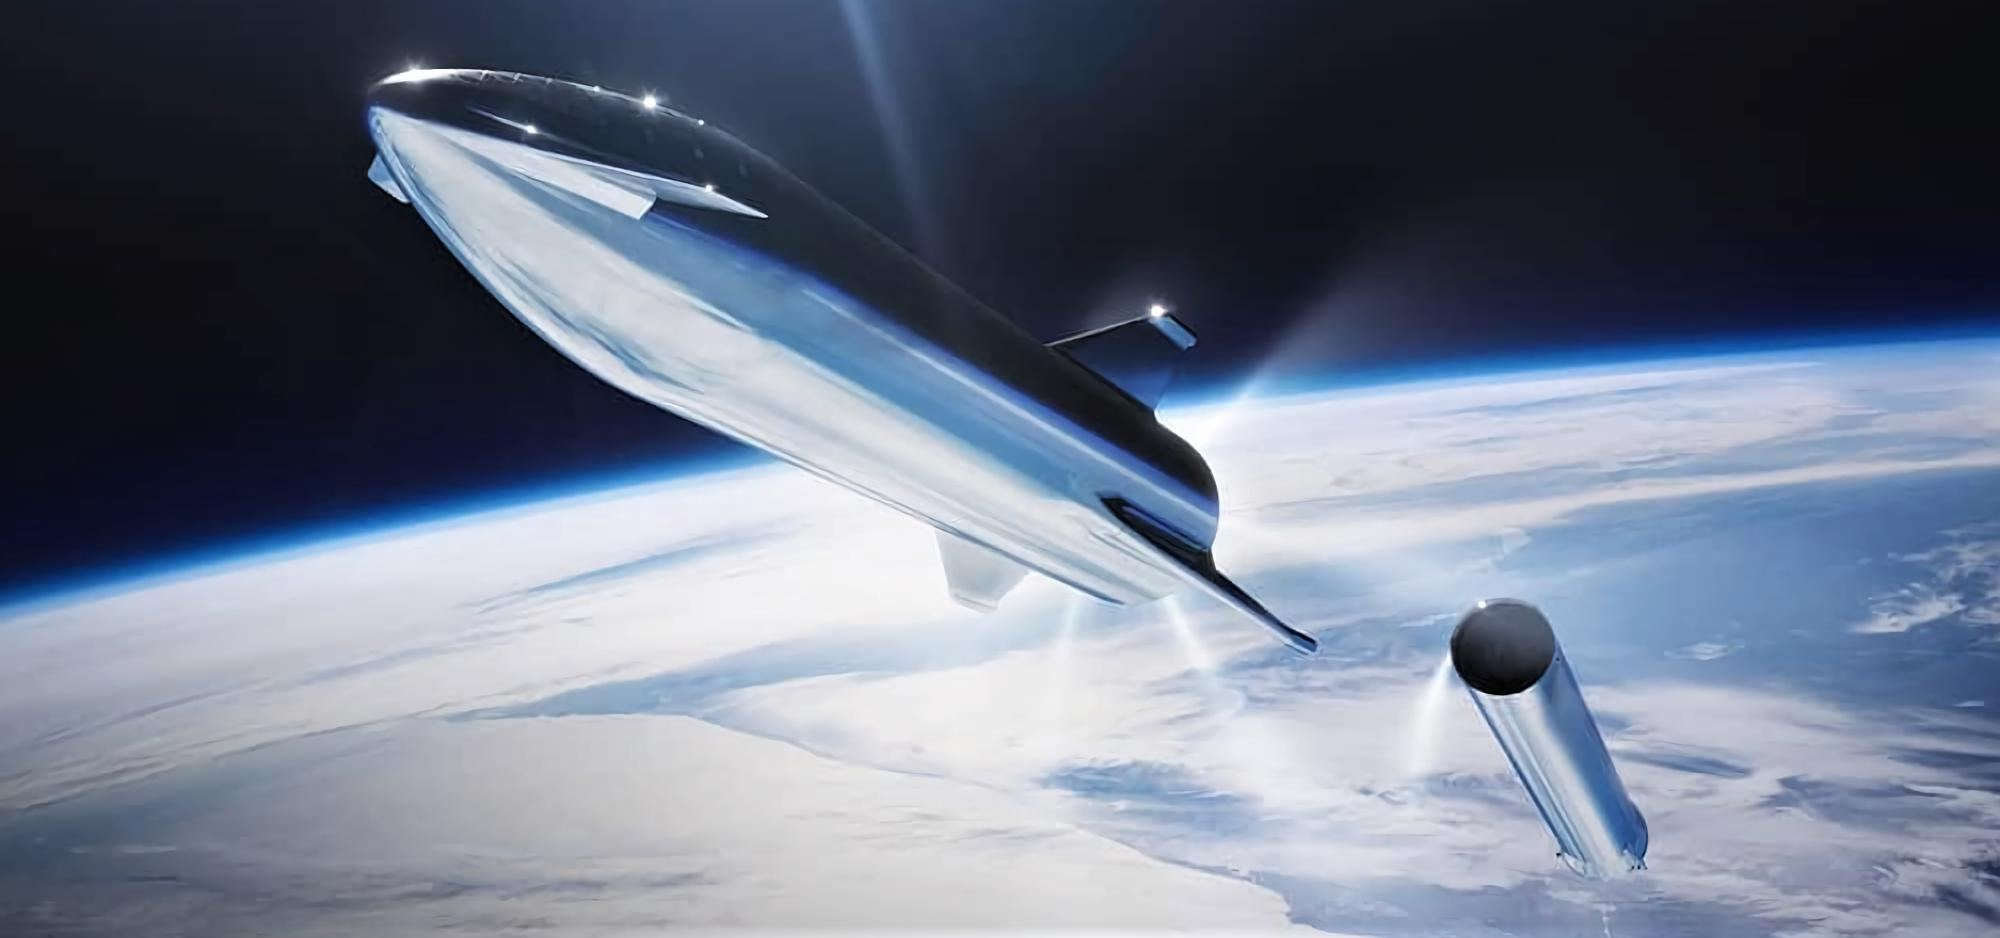 Starship-Super-Heavy-steel-render-2019-SpaceX-2X-1-crop-2000x938.jpg